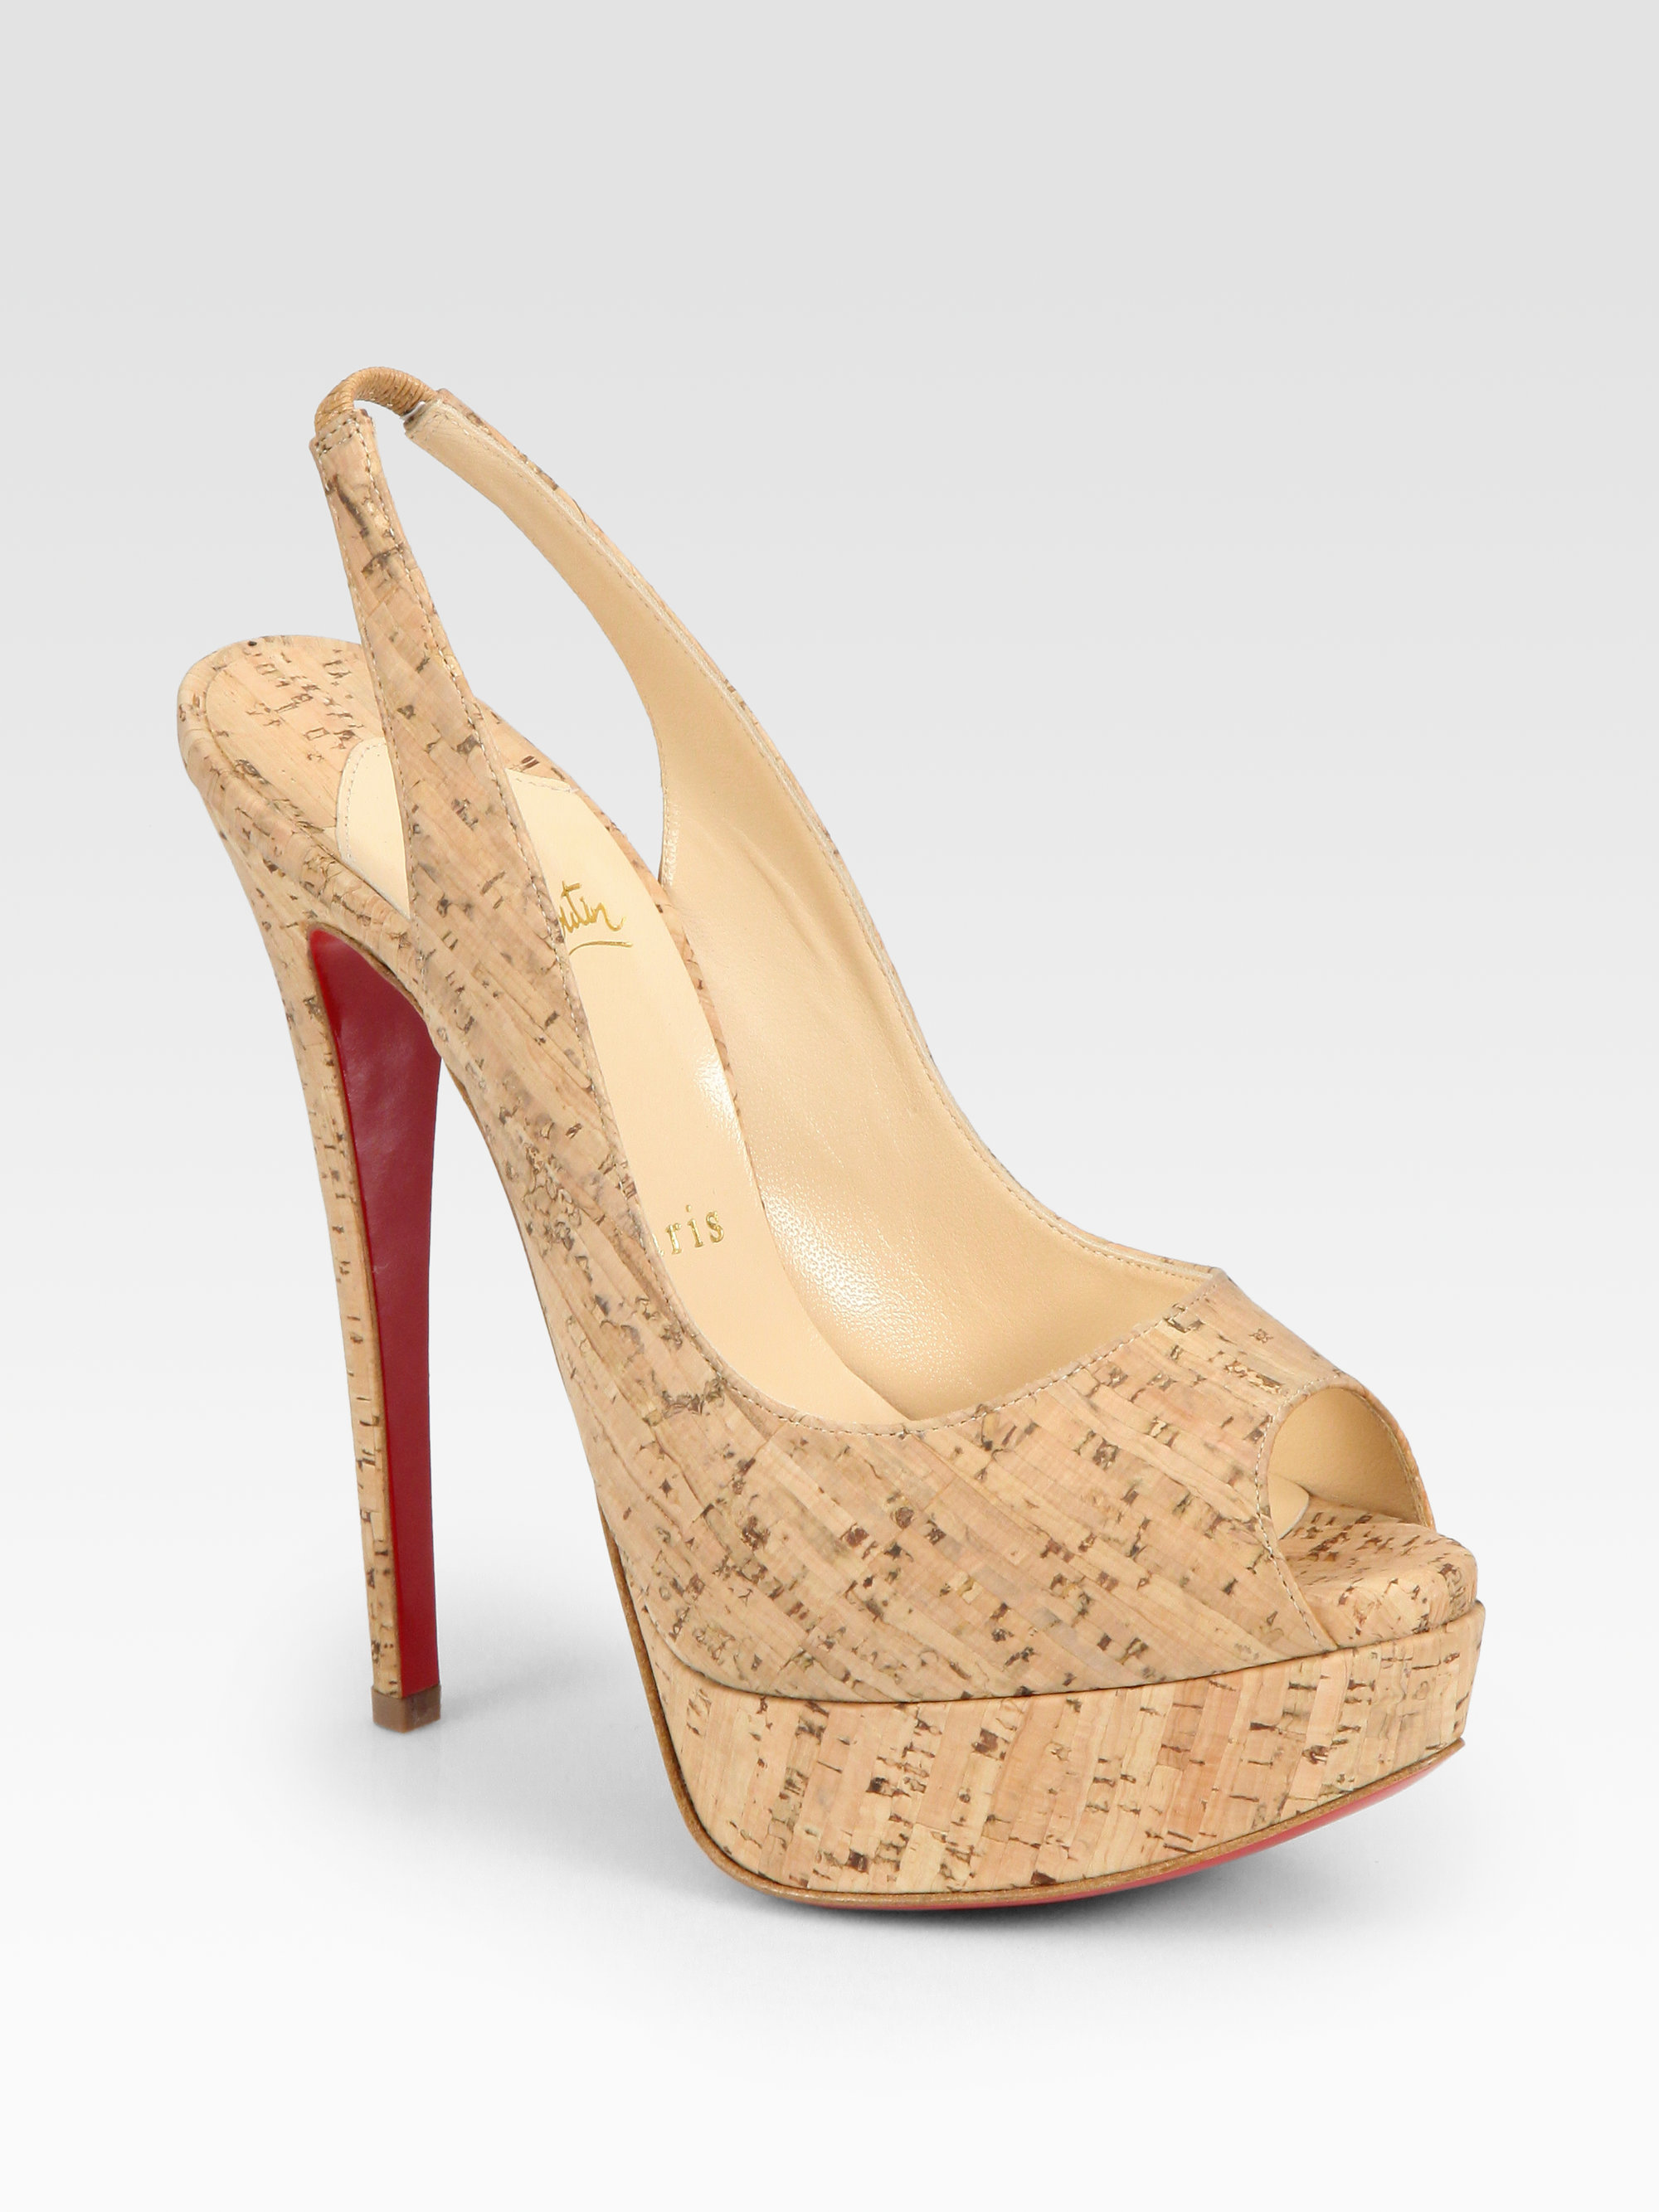 christian louboutin lady cork peep toe slingback platform. Black Bedroom Furniture Sets. Home Design Ideas